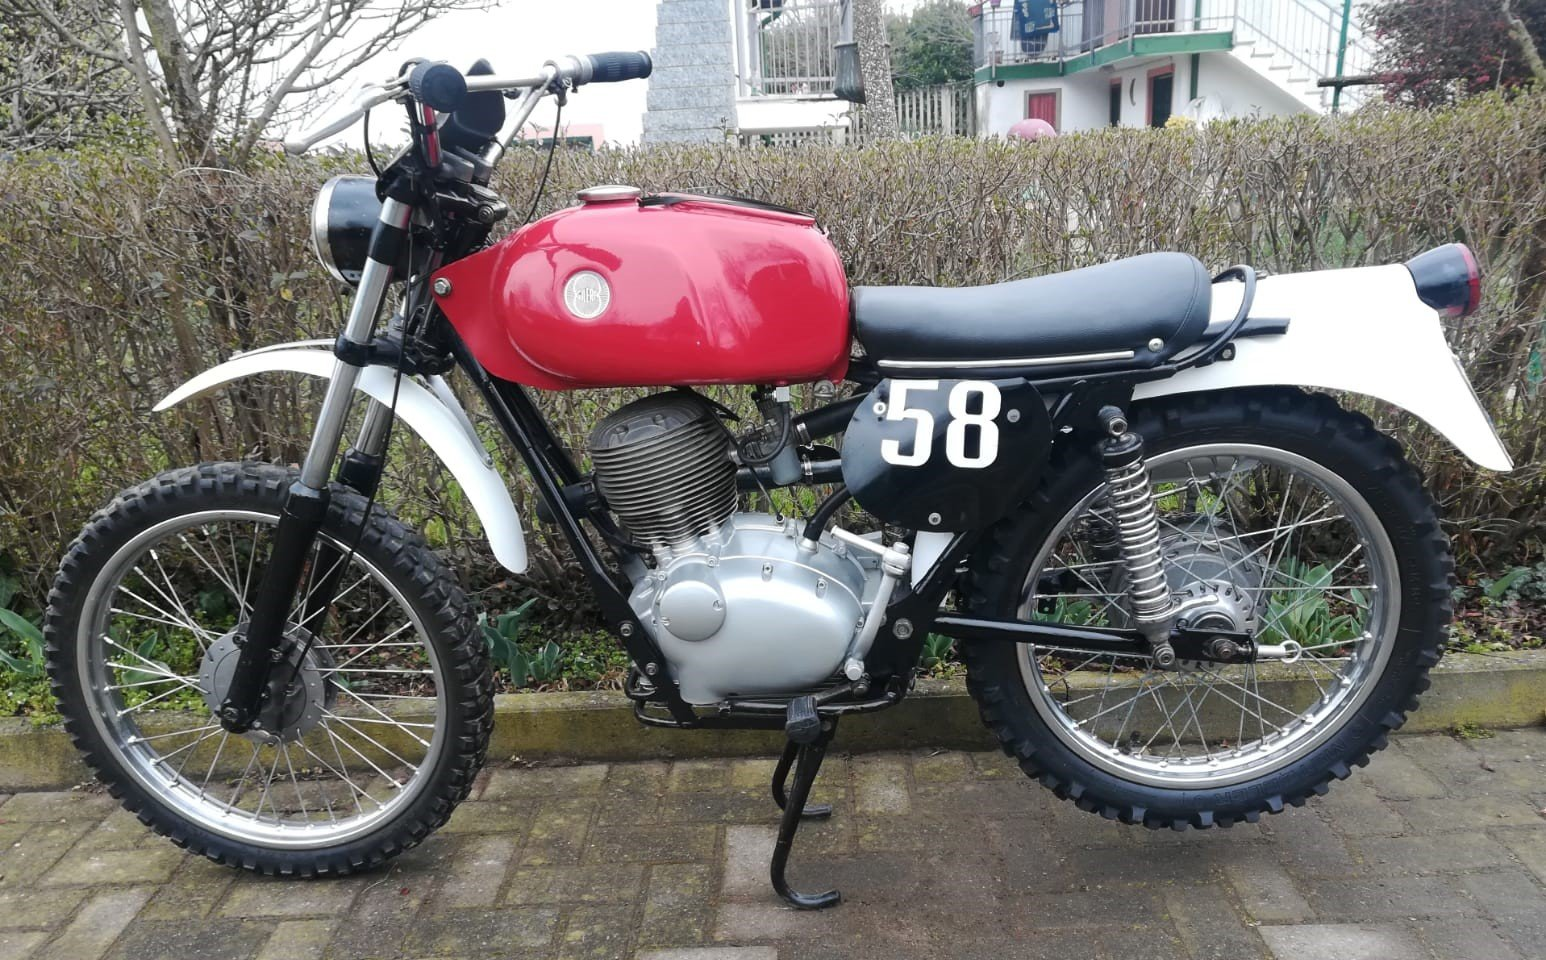 1972 Gilera 124cc Regolarita' Competizione For Sale (picture 2 of 6)